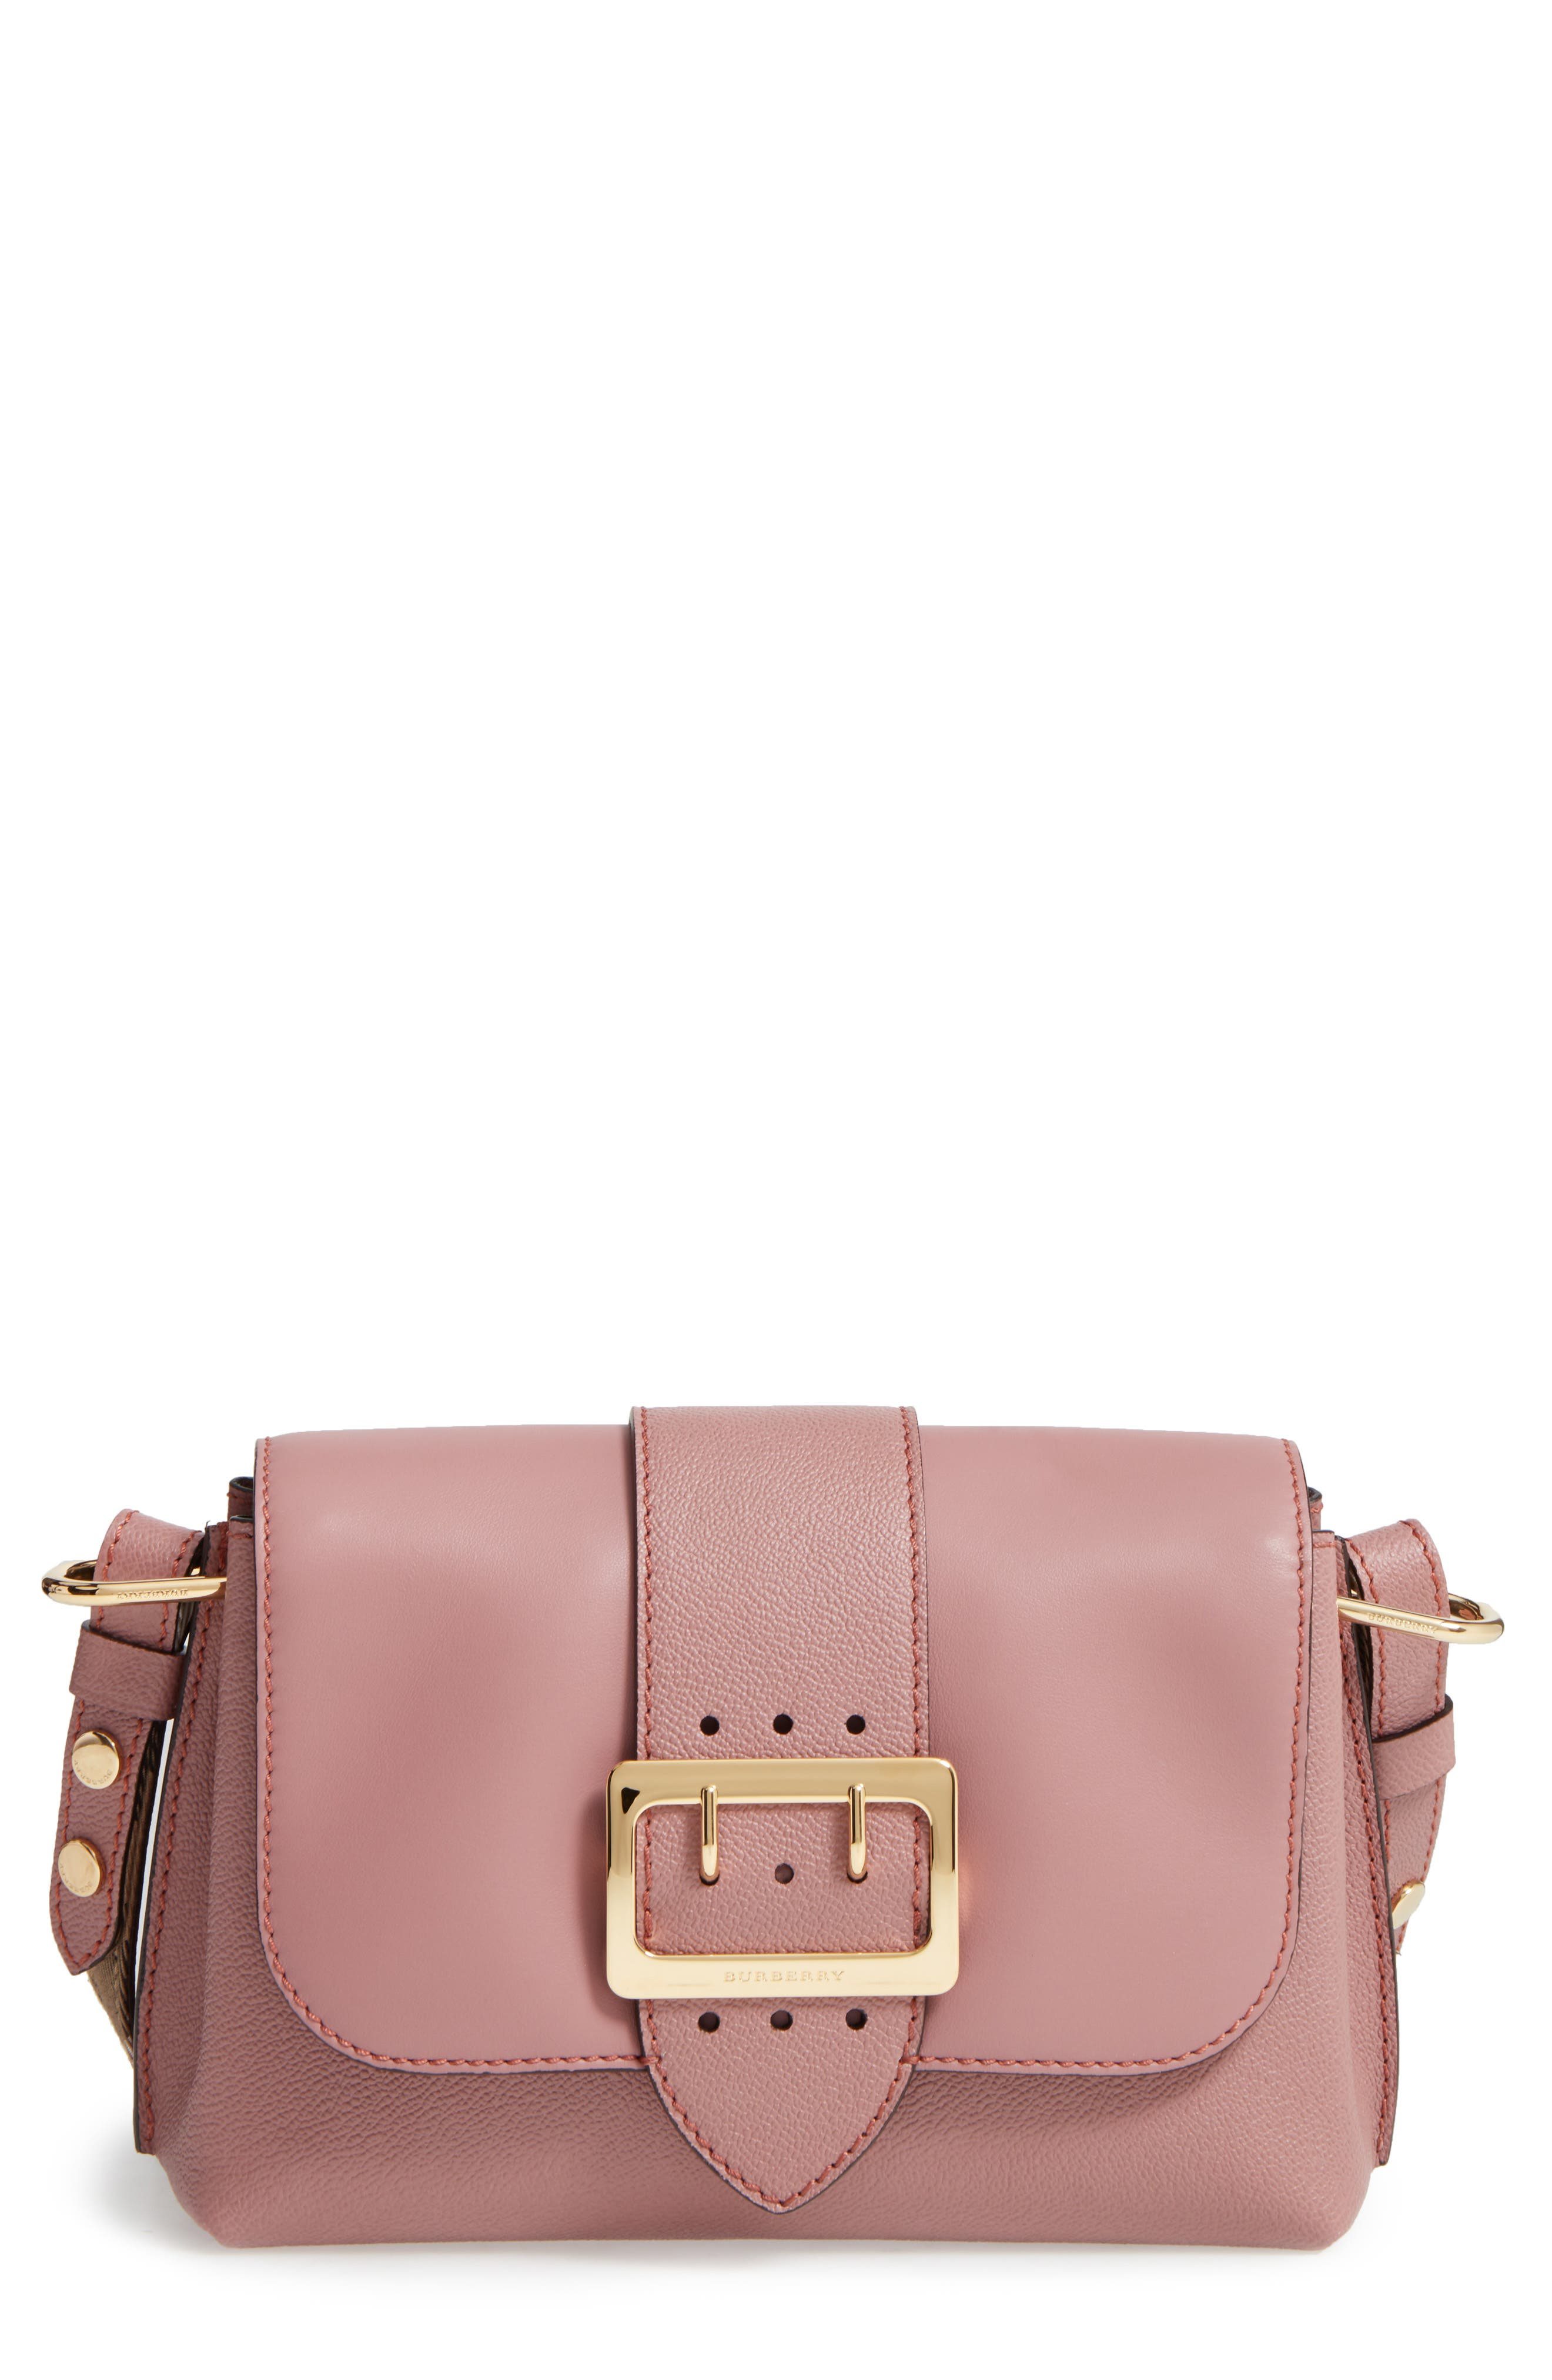 Small Medley Leather Shoulder Bag,                             Main thumbnail 1, color,                             Dusty Pink